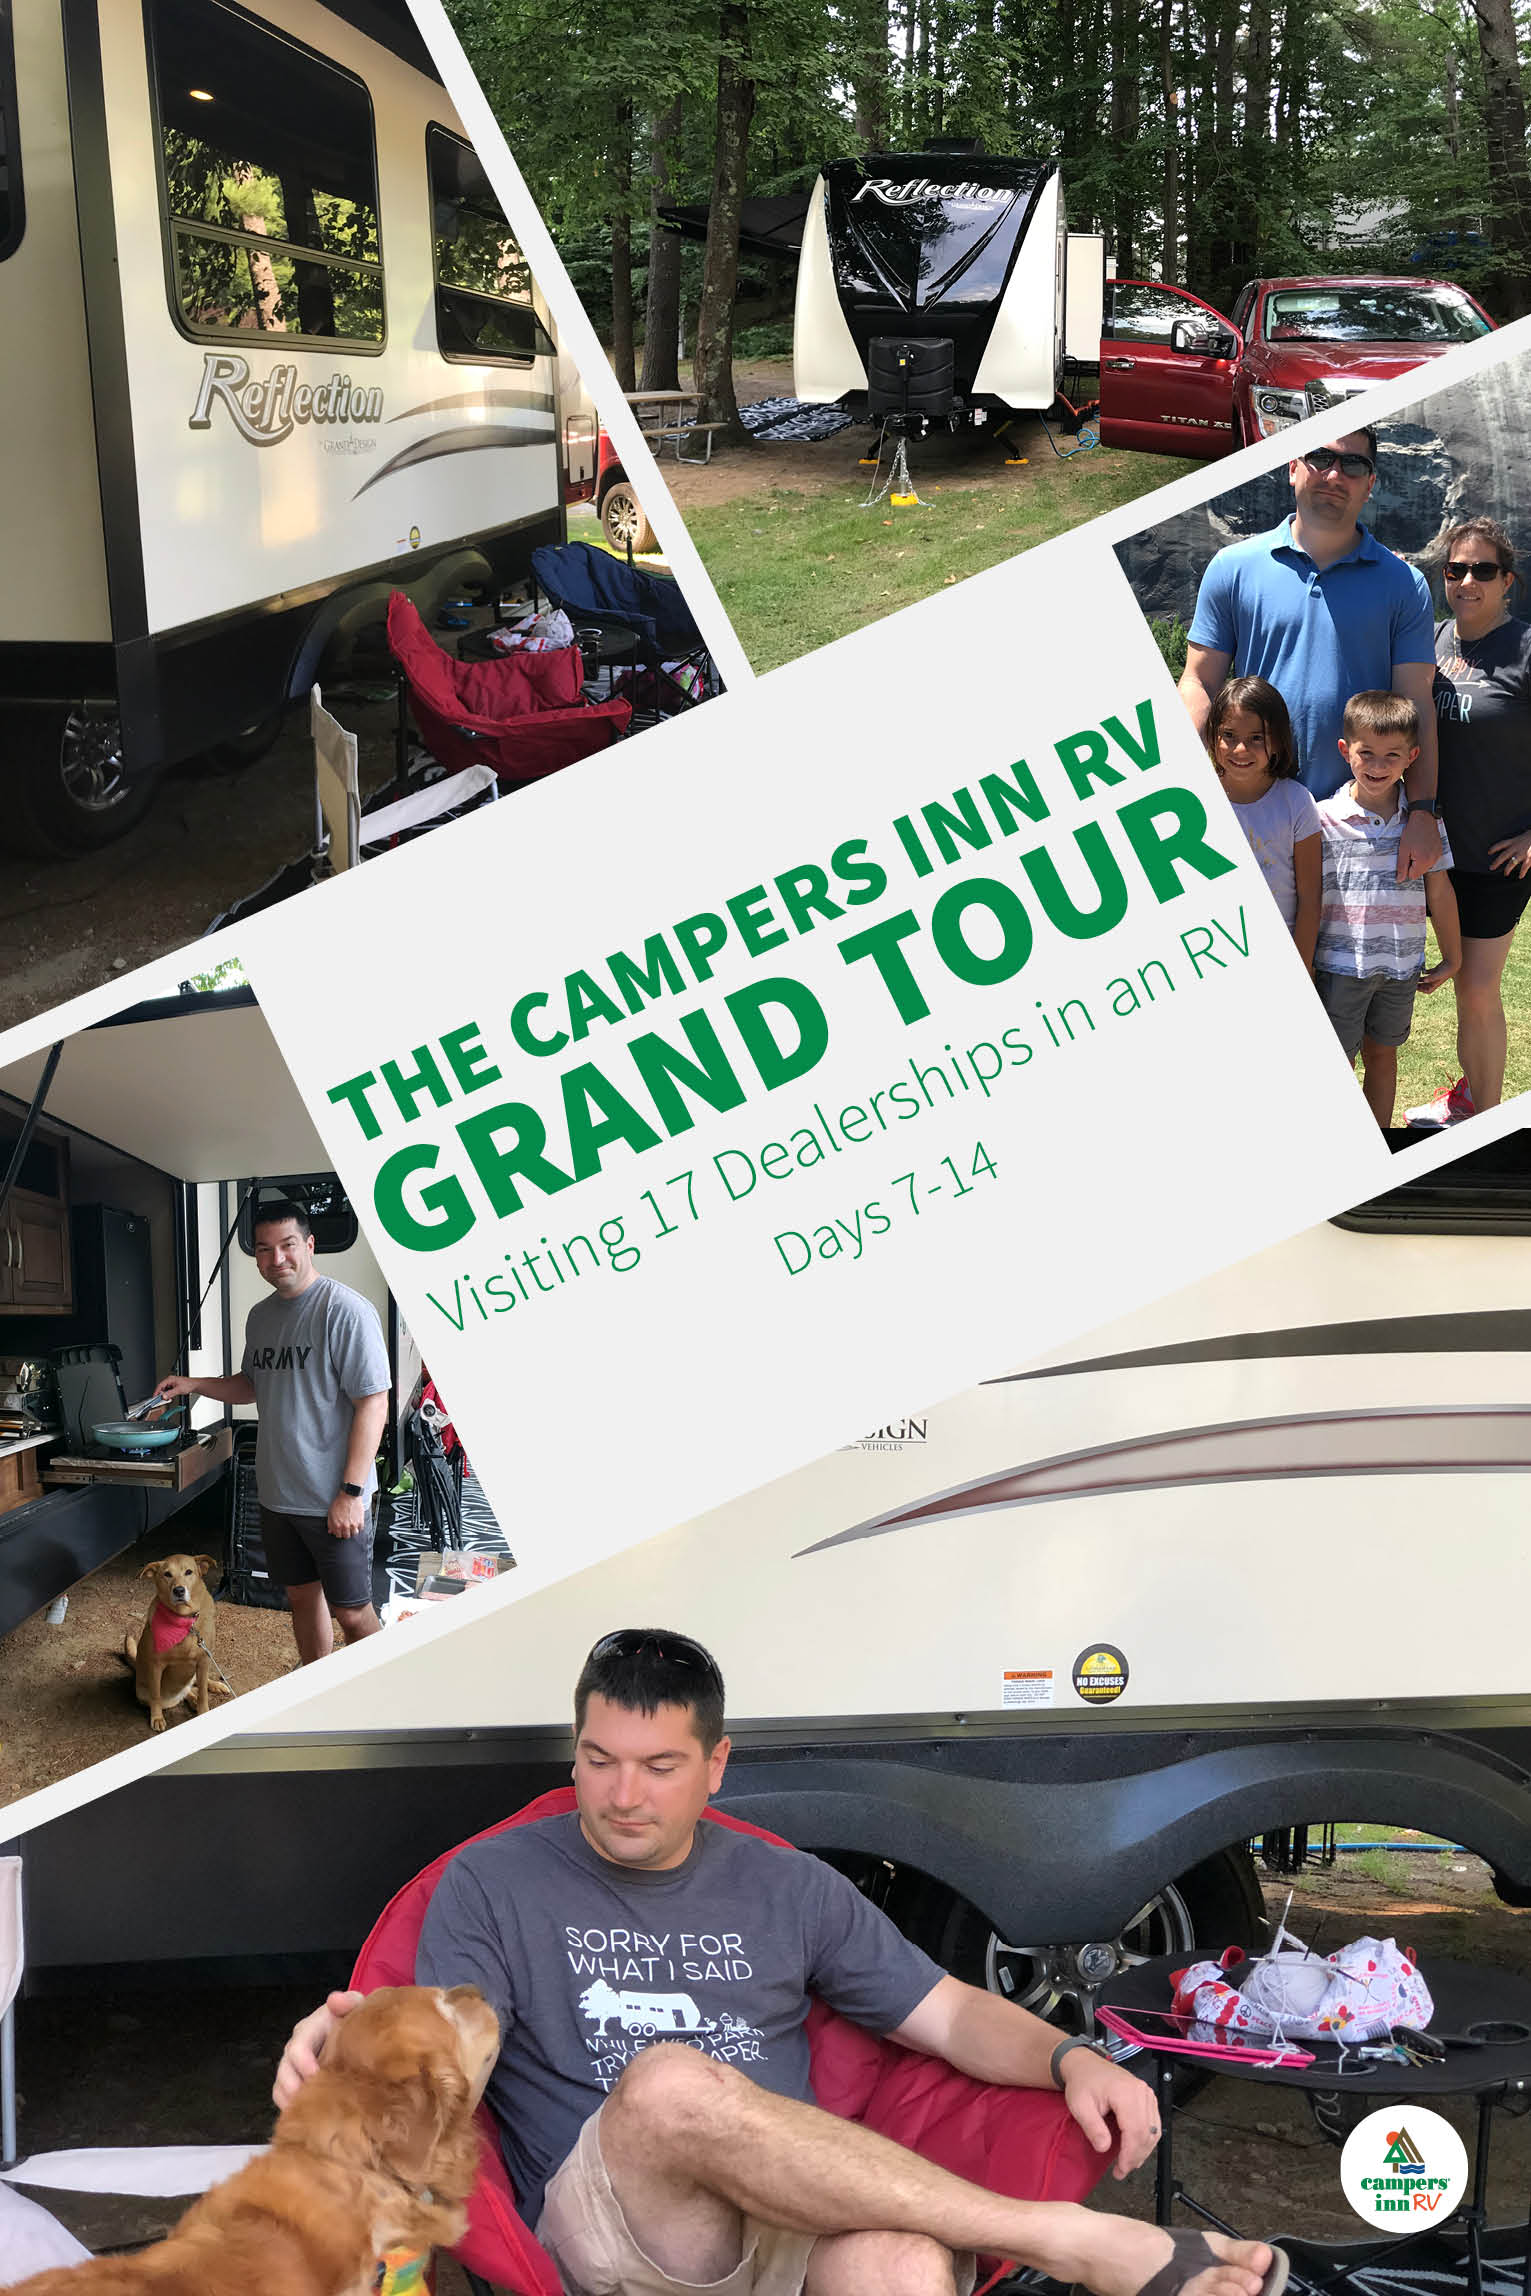 20181023_CI_Pinterest_and_IG_stories_Grand Tour 4